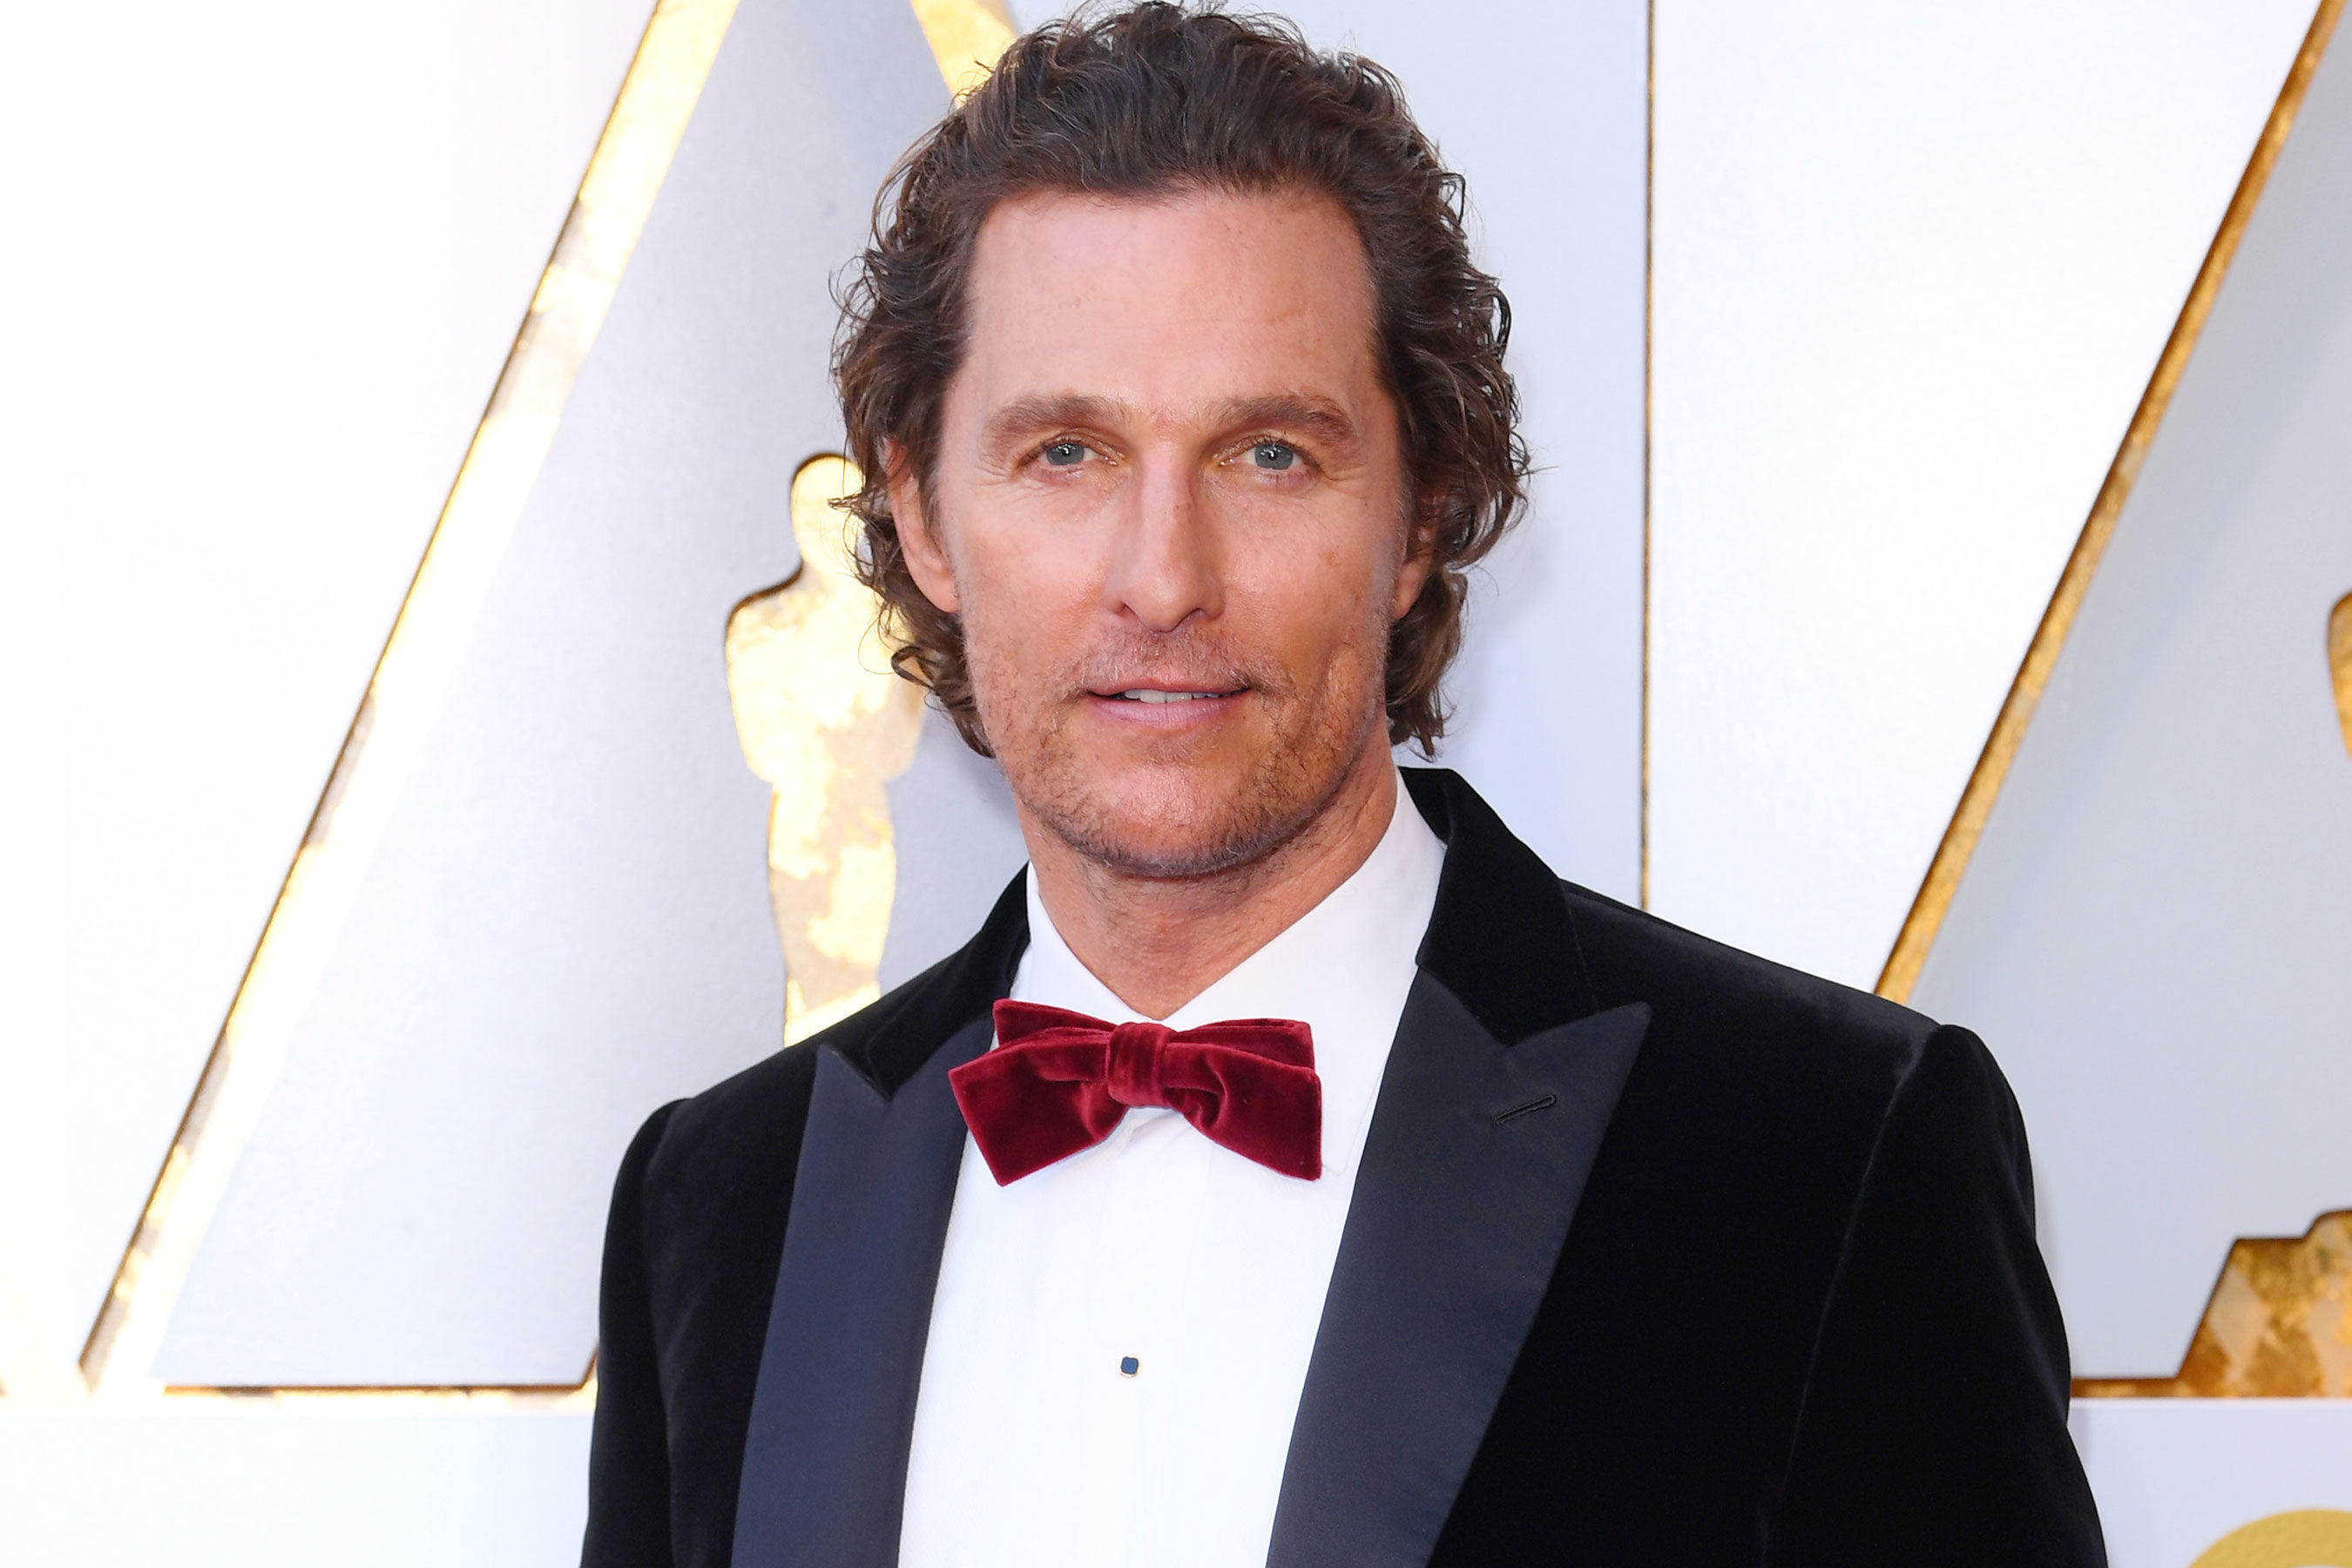 Matthew McConaughey Auditioned to Play Leonardo DiCaprio's Role in Titanic